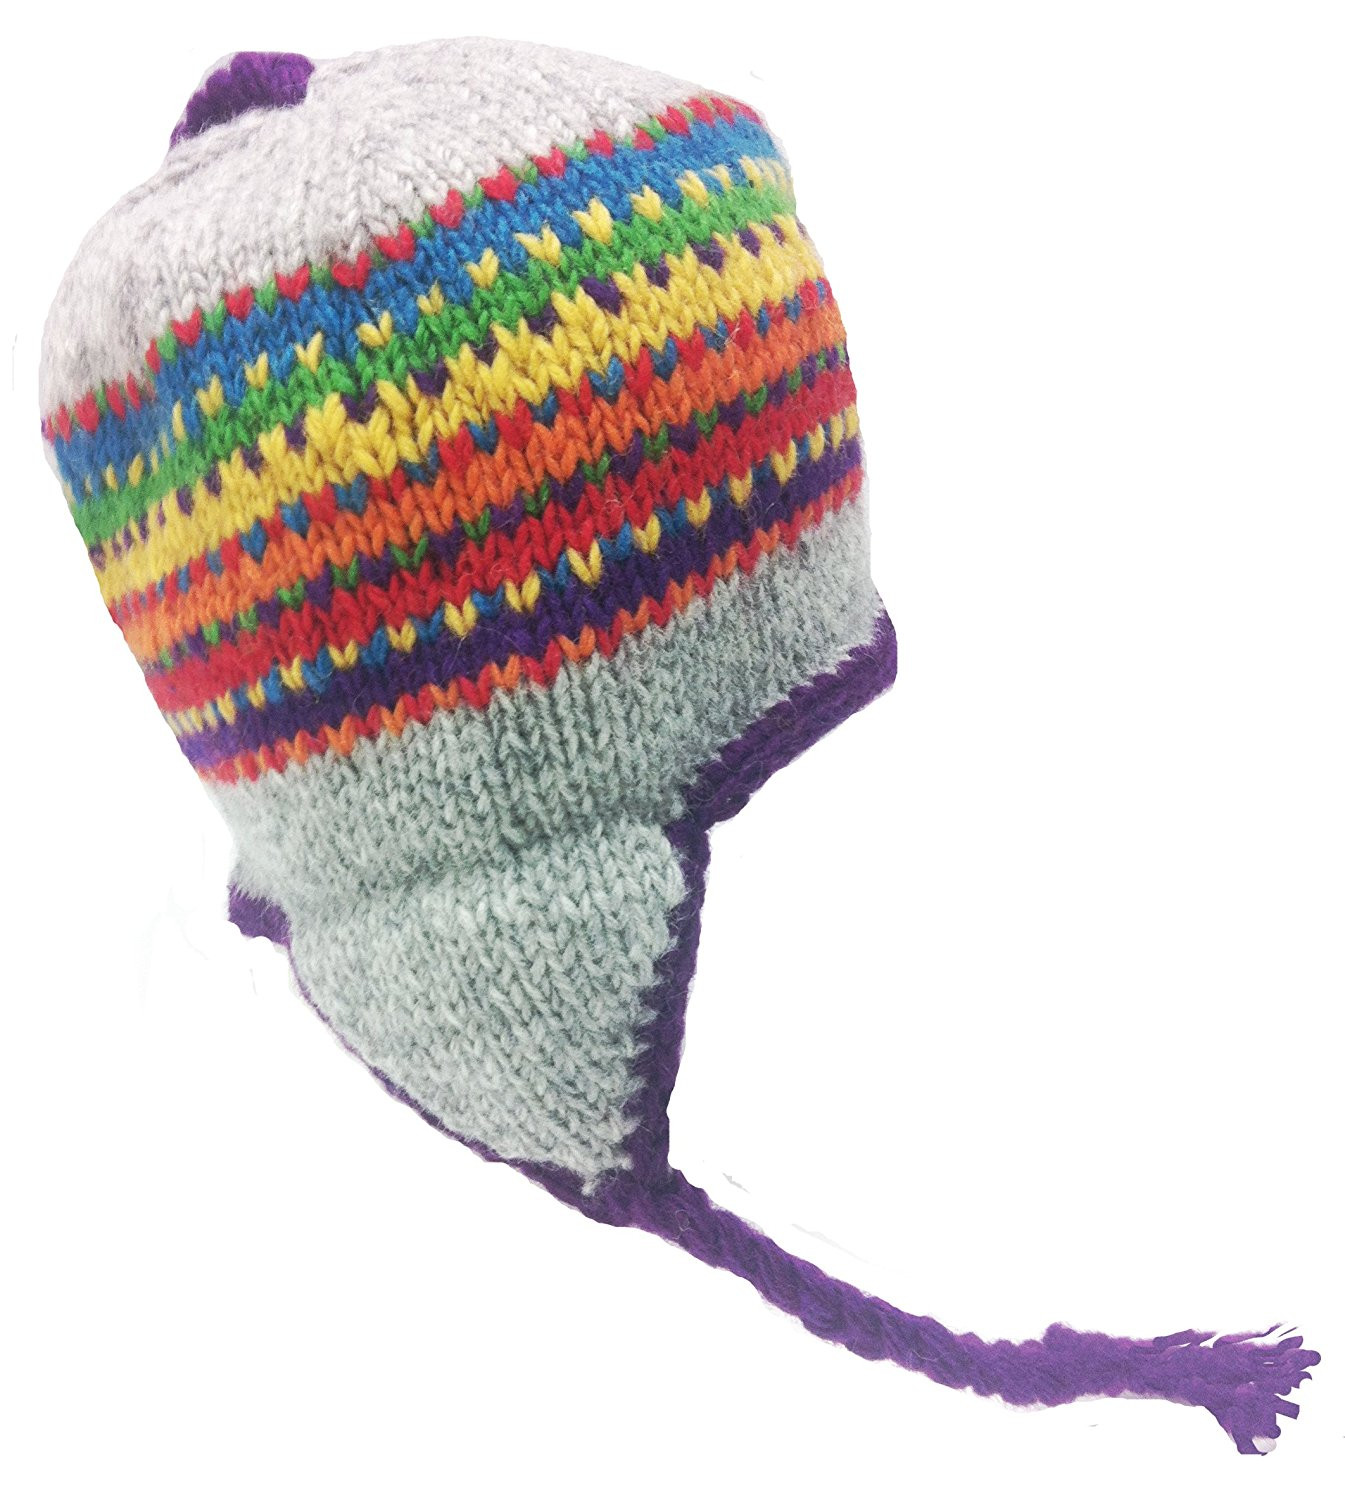 Awesome Nepal Hand Knit Sherpa Hat with Ear Flaps Fishingnew Knit Hat with Ear Flaps Of Marvelous 50 Pics Knit Hat with Ear Flaps